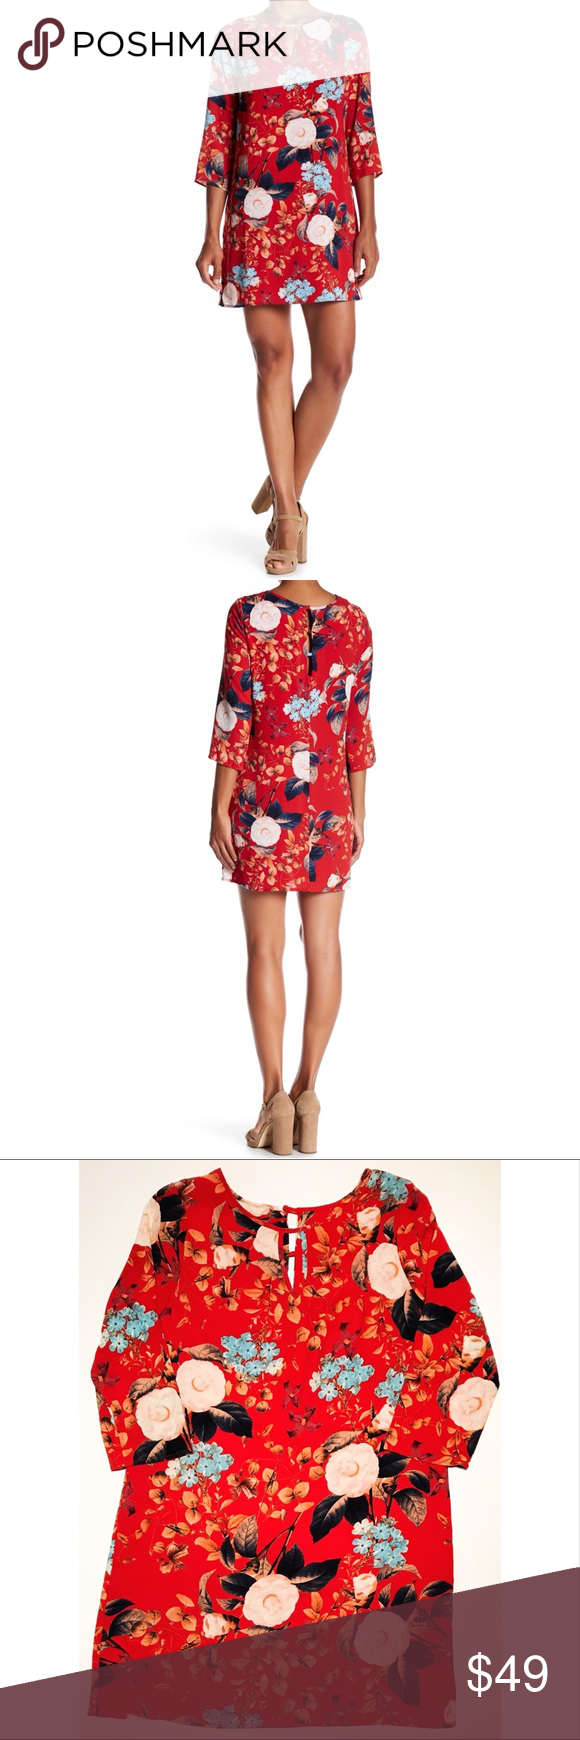 Cue nwot floral dress keyhole lined red sleeve my posh picks